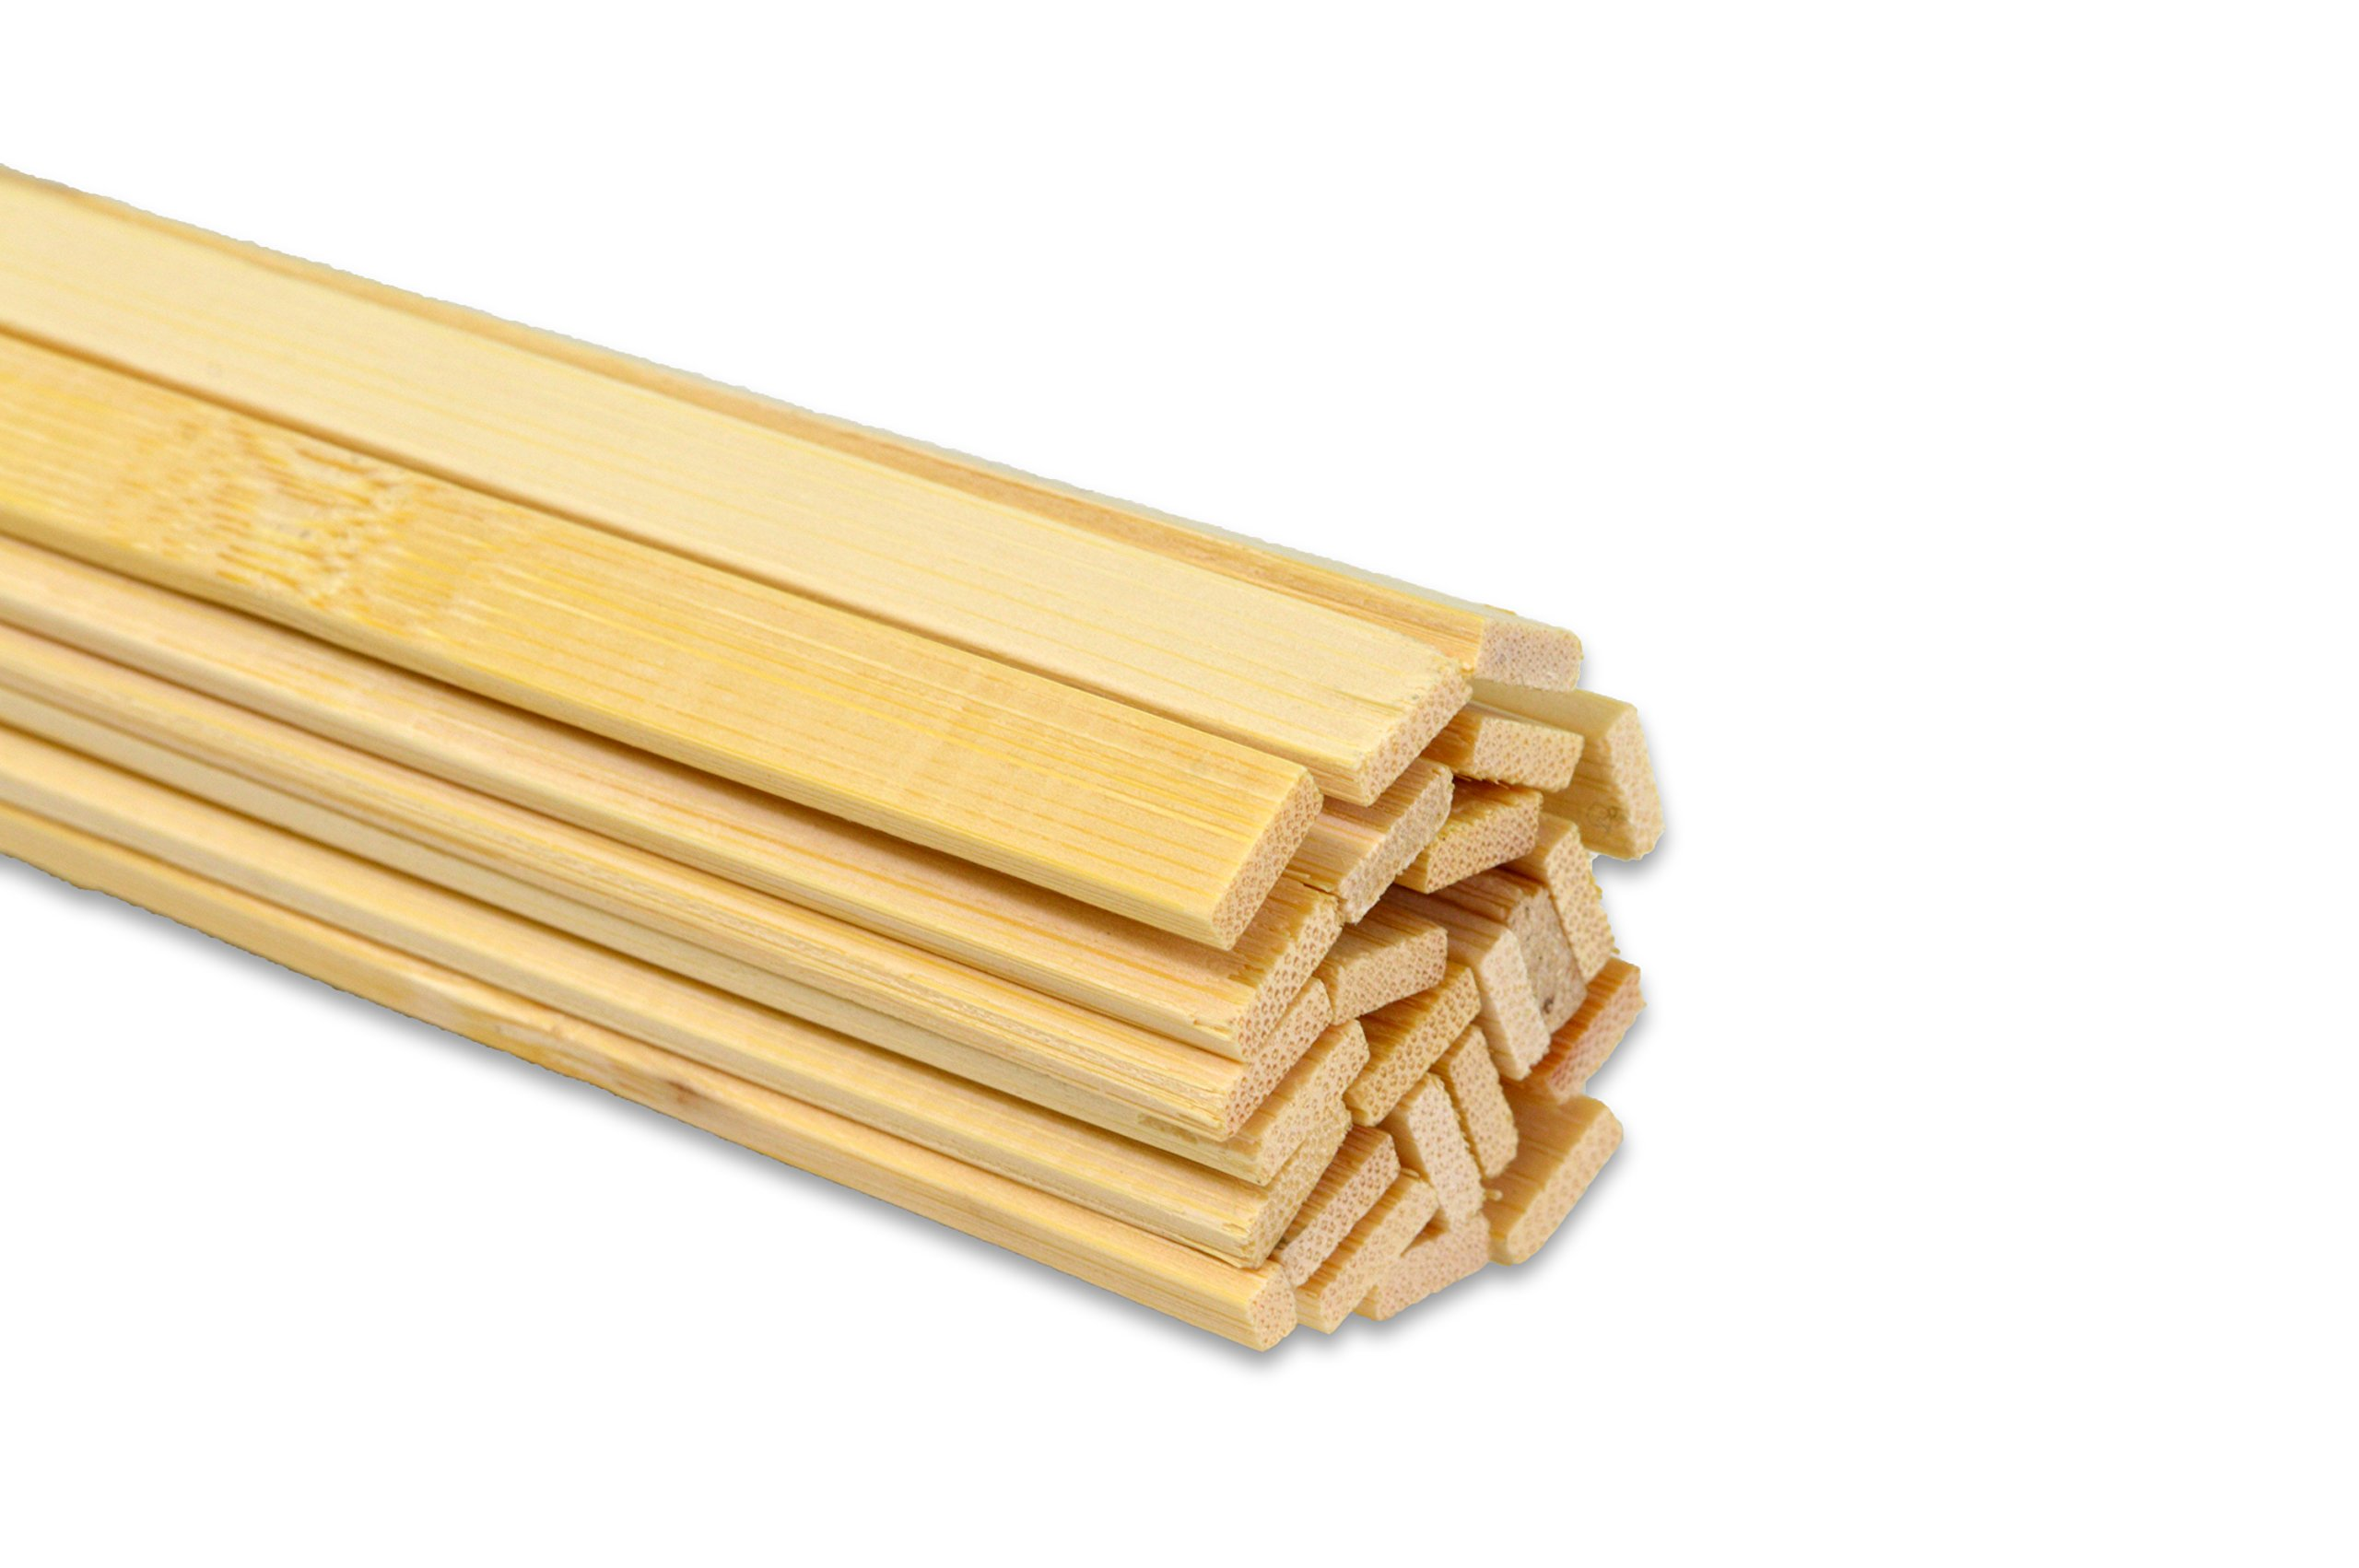 15.5'' Extra Long Wooden Craft Sticks. Flexible, Can be Made to Curve, Strong. Natural Bamboo. 48 Pieces. 3/8'' wide